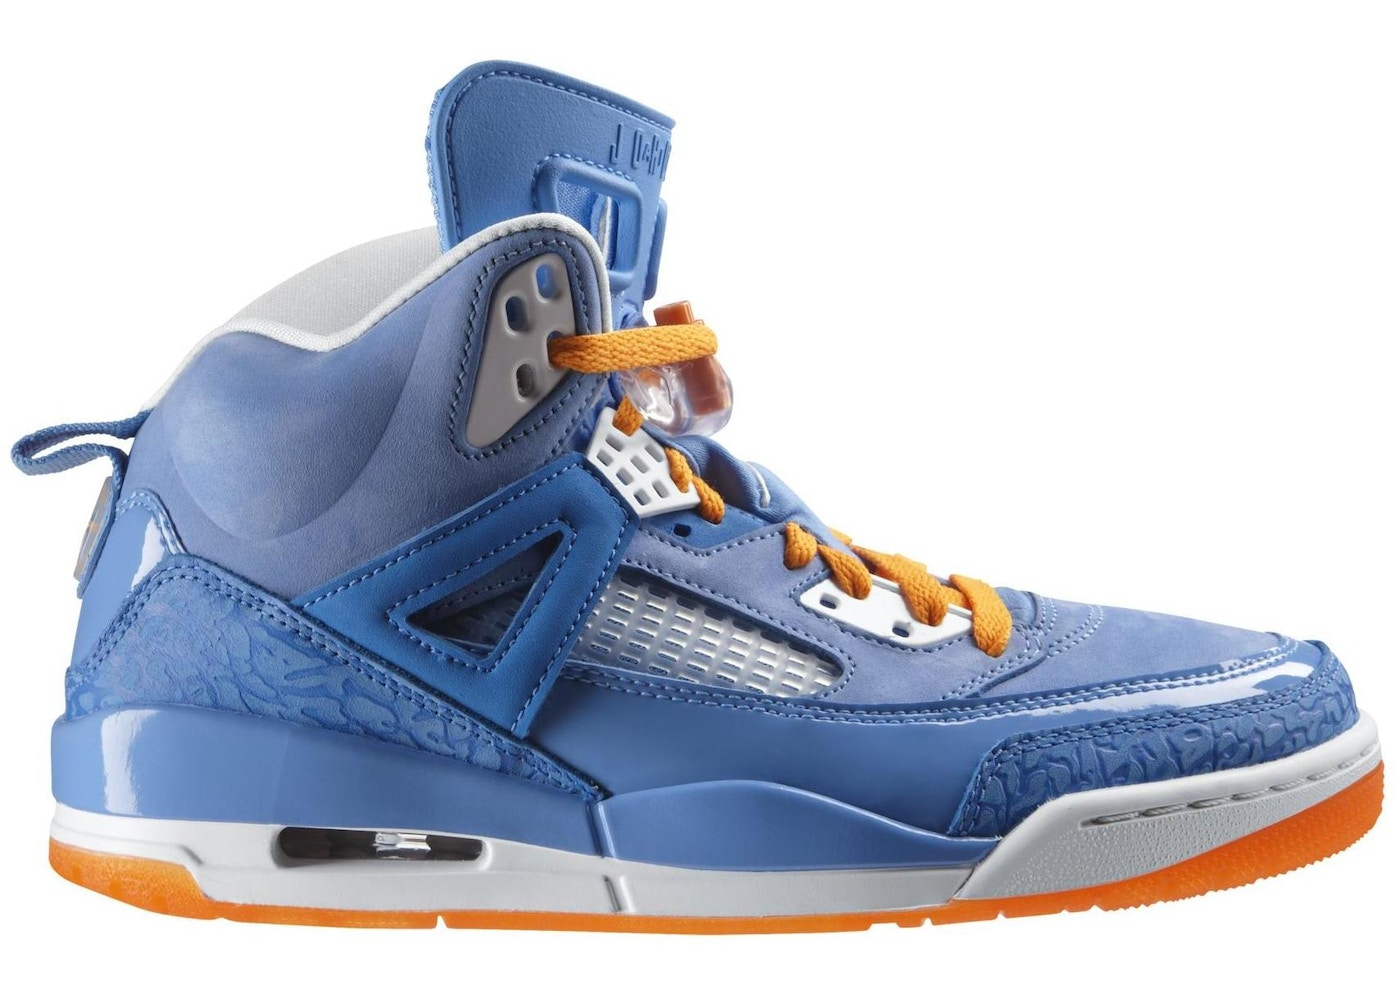 new product a078c 6c1db Jordan Spiz ike Year of the Dragon